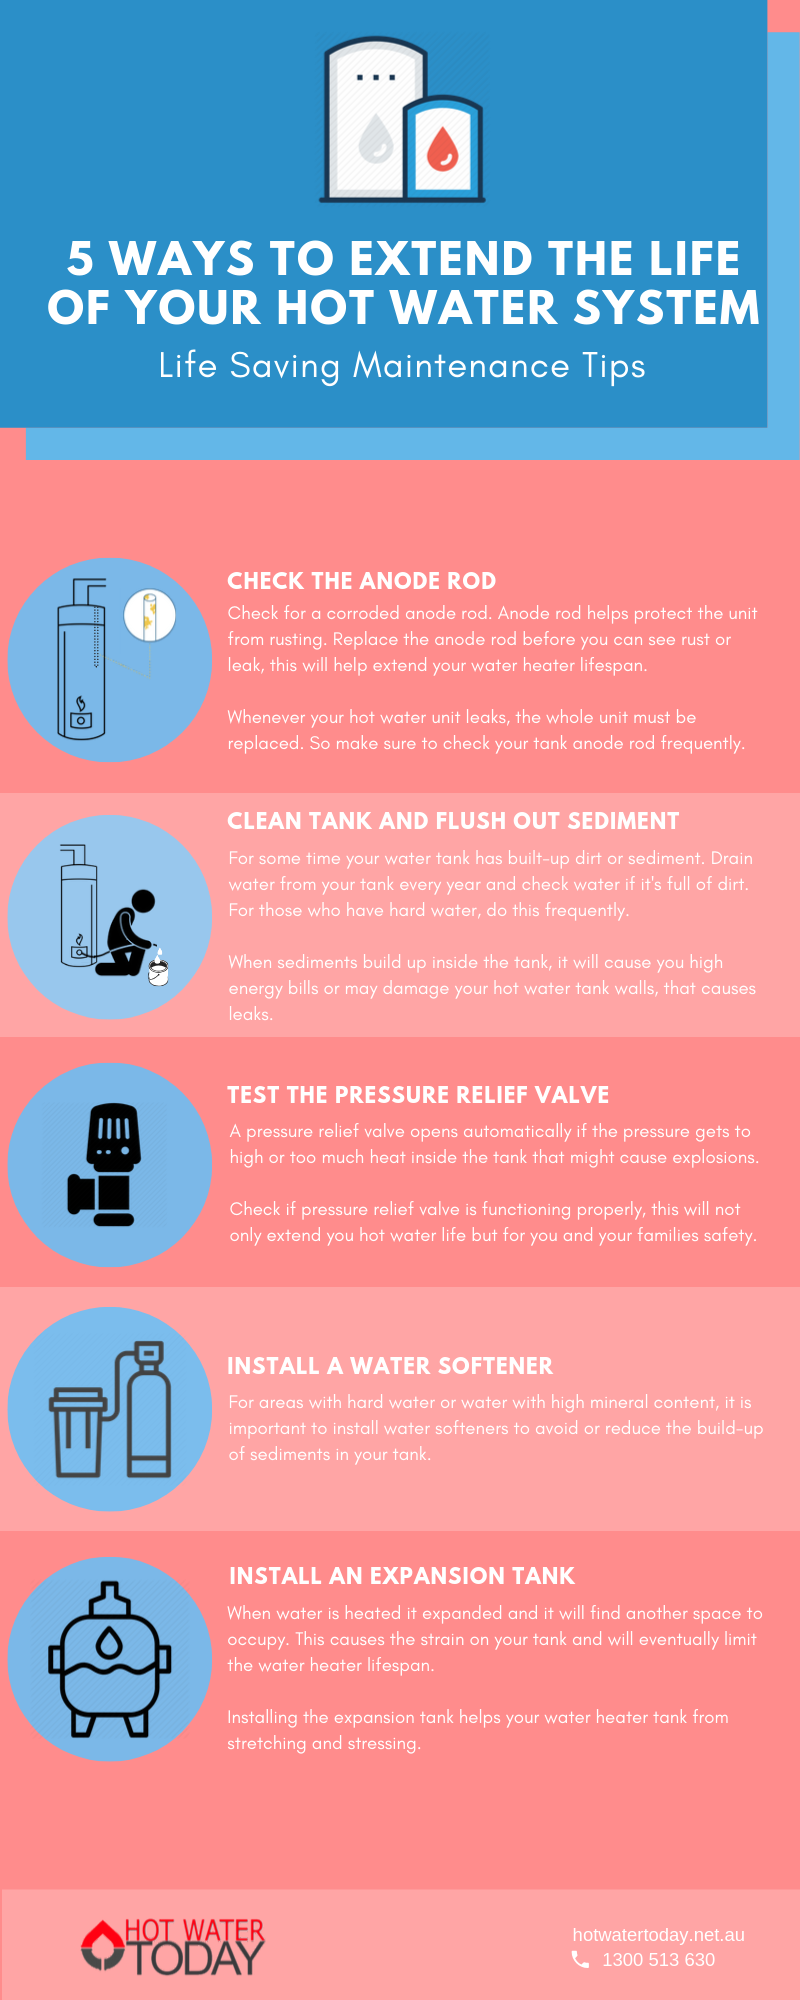 5 Ways To Extend The Life Of Your Hot Water System Hot Water System Water Systems Hot Water